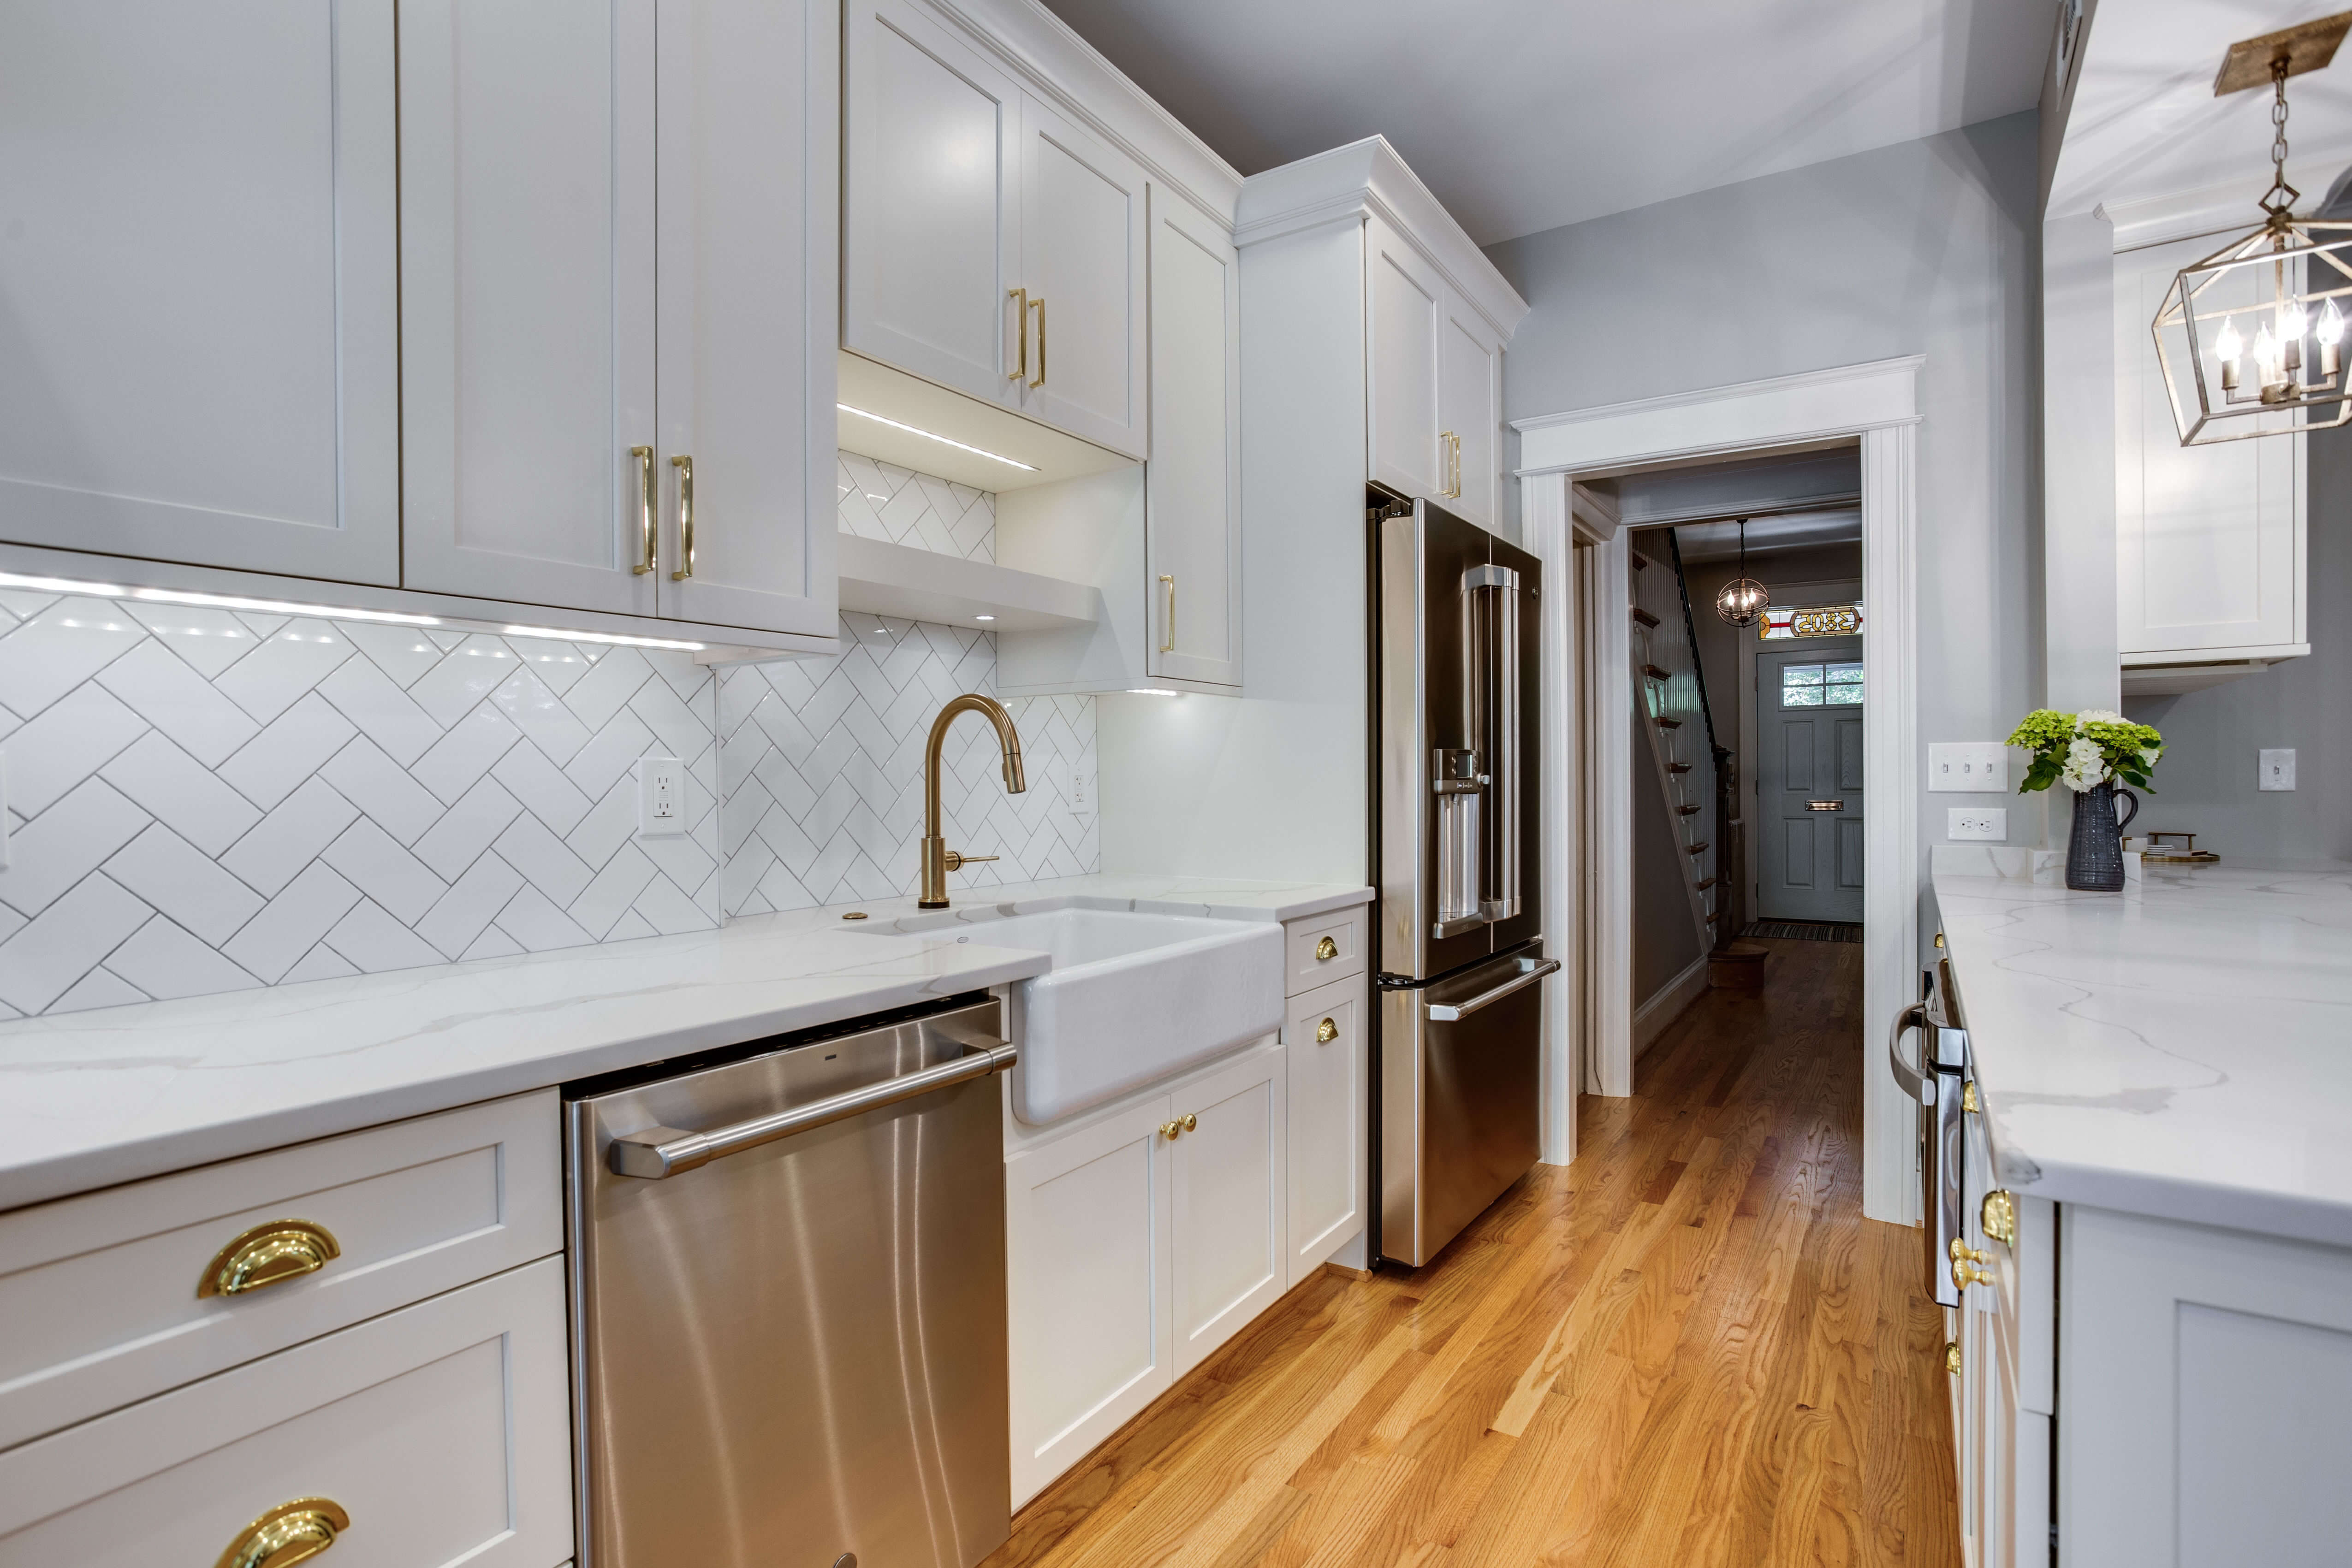 Photo of the beautiful backsplash design that Marissa Shipe suggested for the homeowners kitchen remodel. The design features classic subway tile in a herringbone pattern.